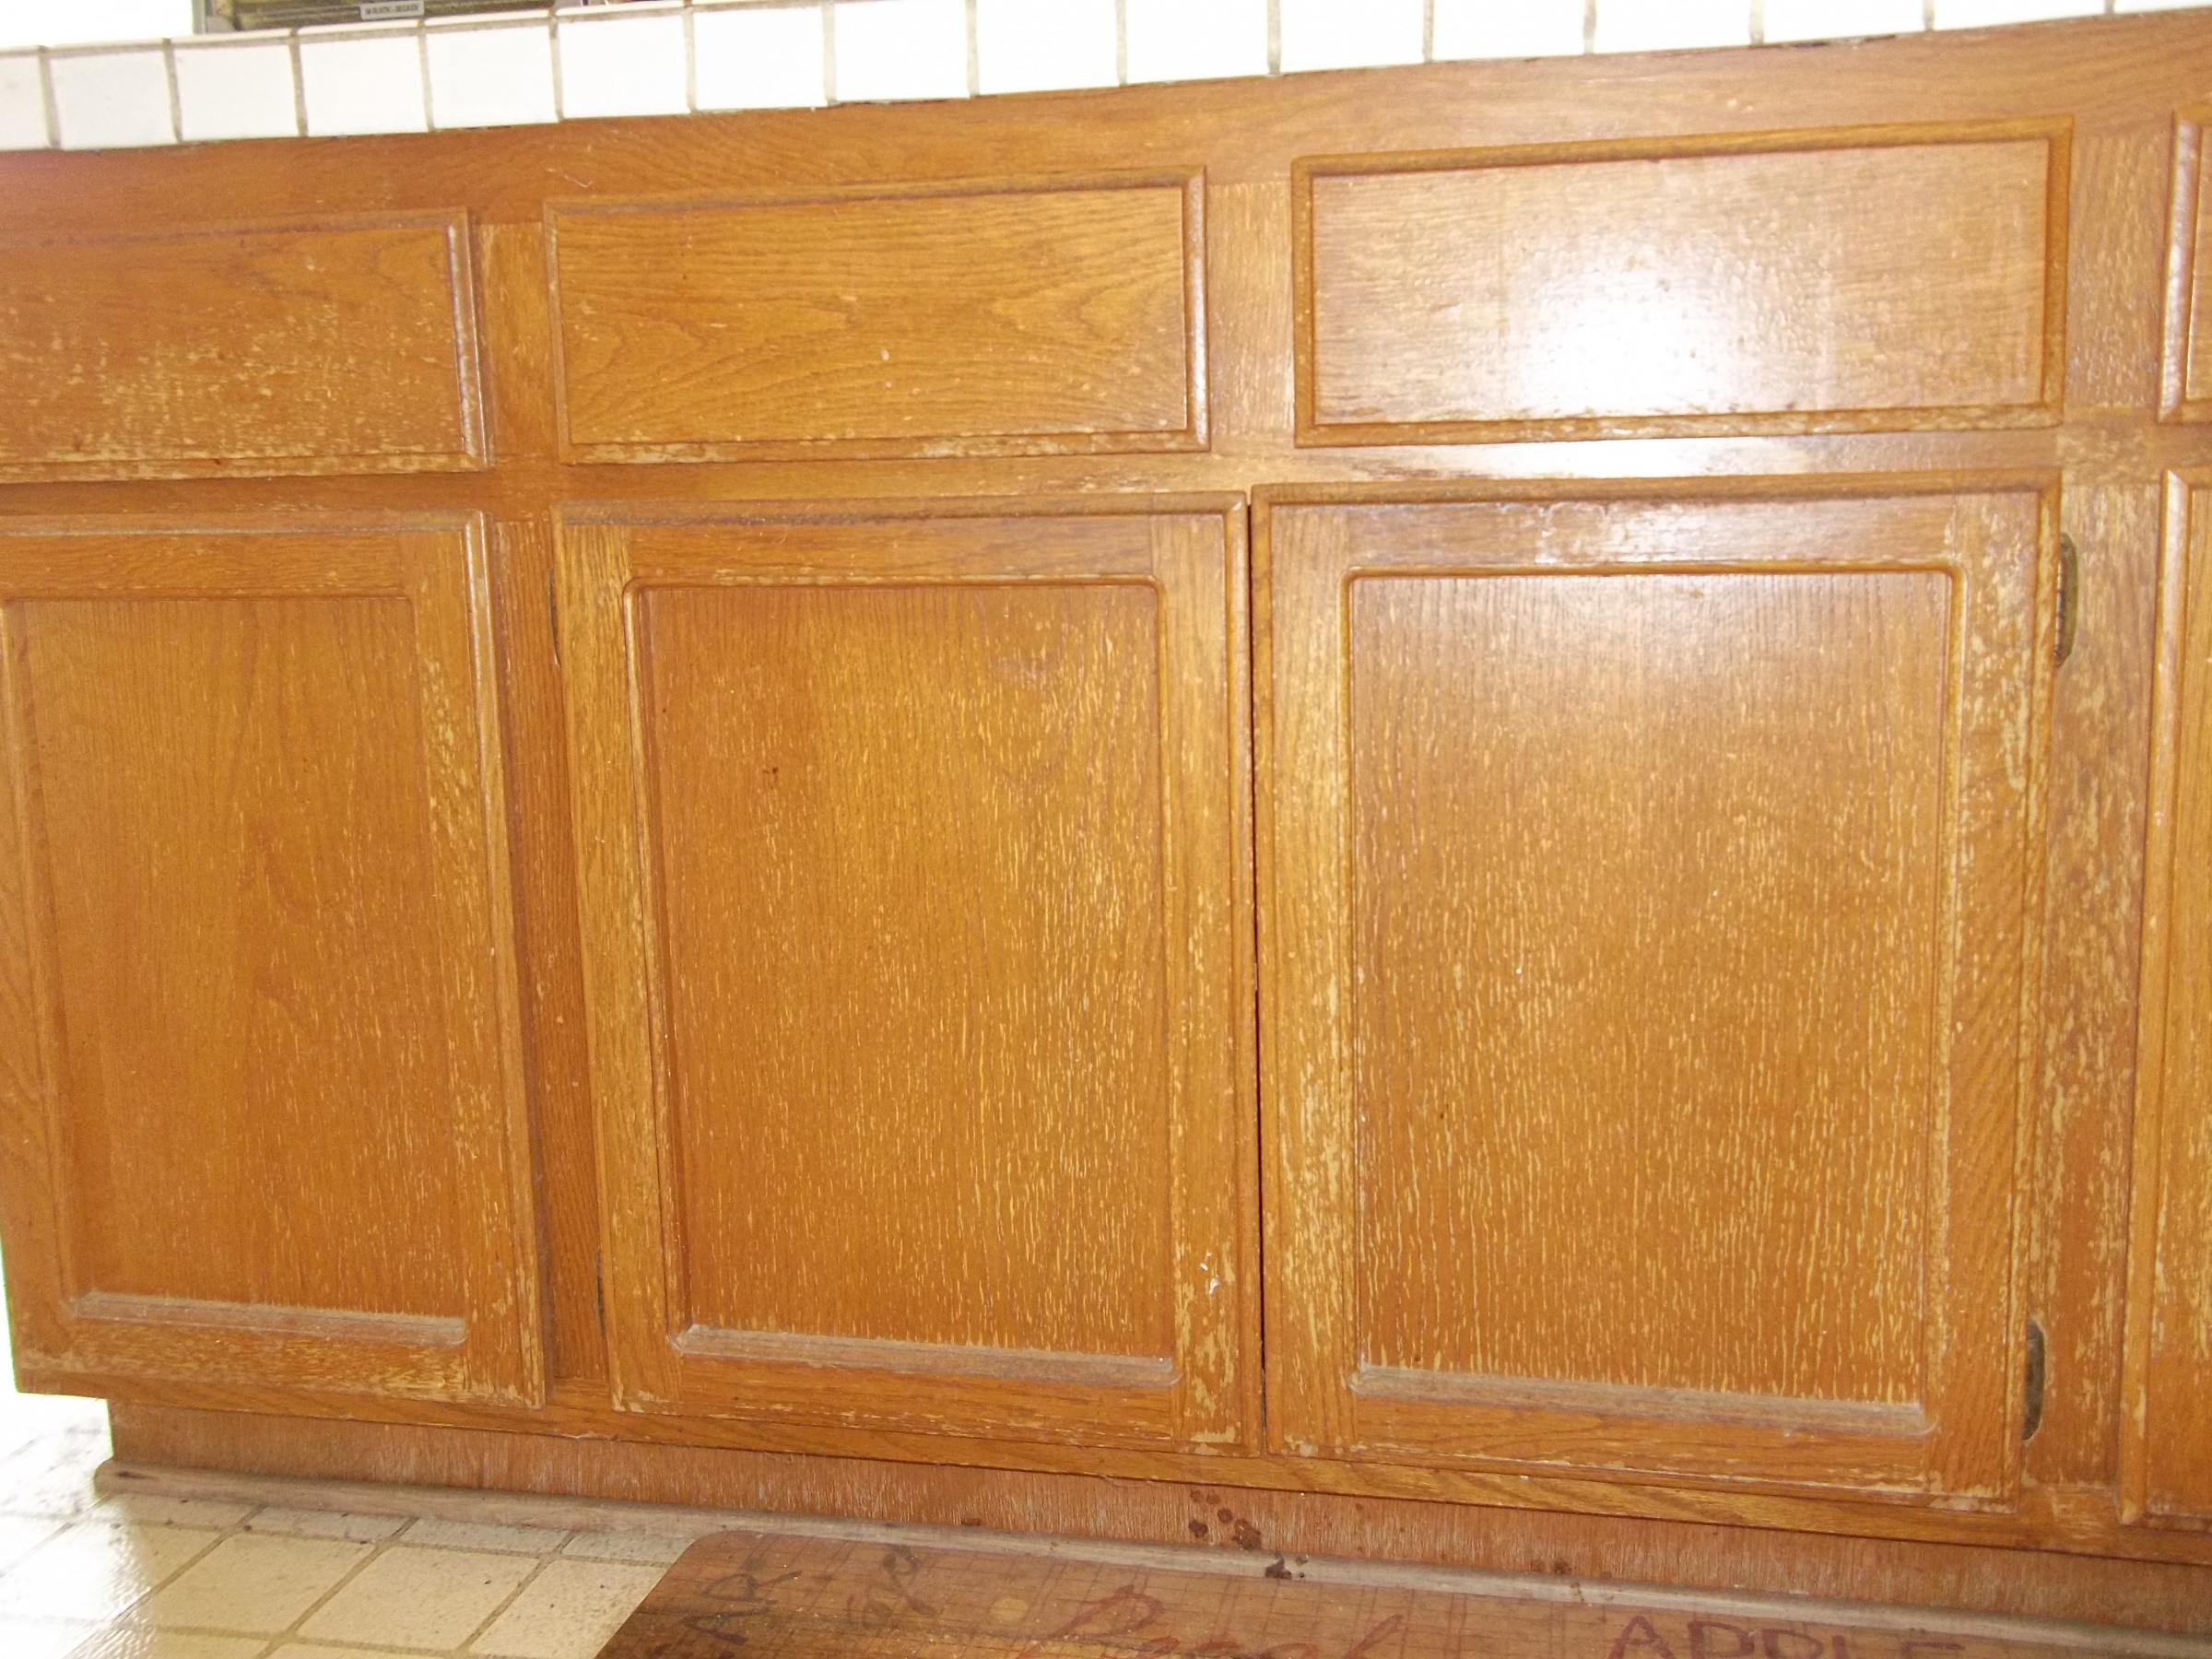 Color Matching Kitchen Cabinet Stain ? - Painting - DIY ...